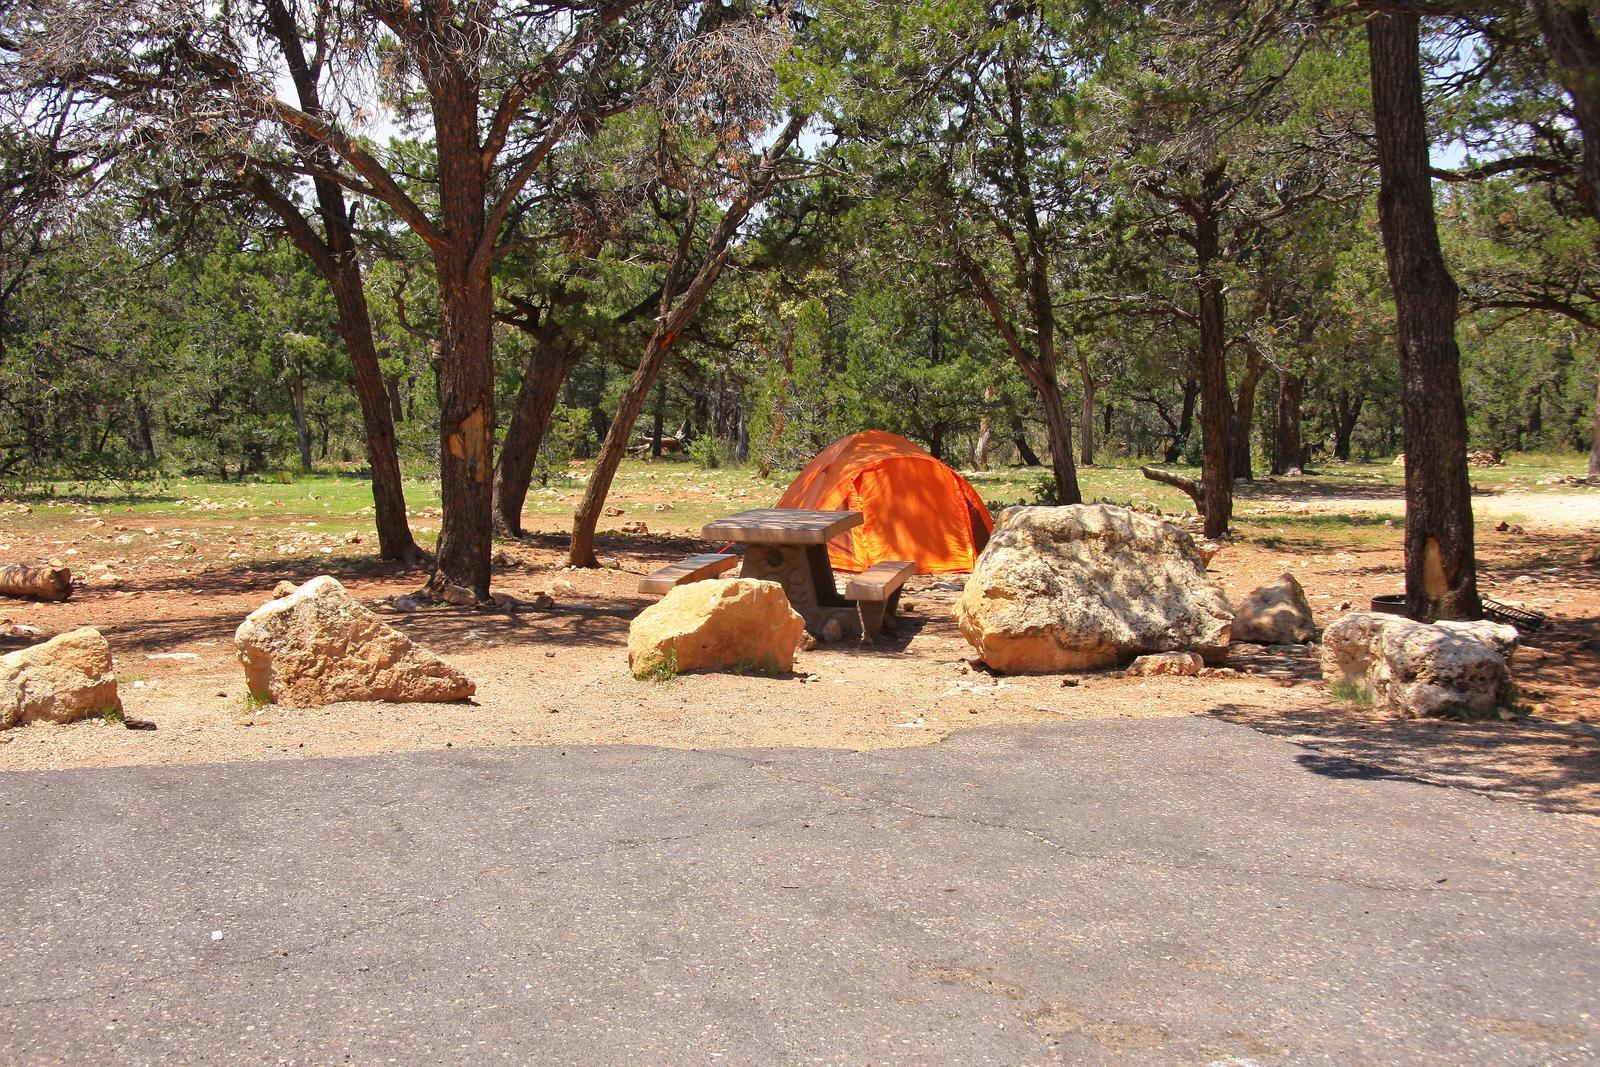 Picnic table, fire pit, tent, and parking spot, Mather CampgroundPicnic table, fire pit, tent, and parking spot for Juniper Loop 168, Mather Campground